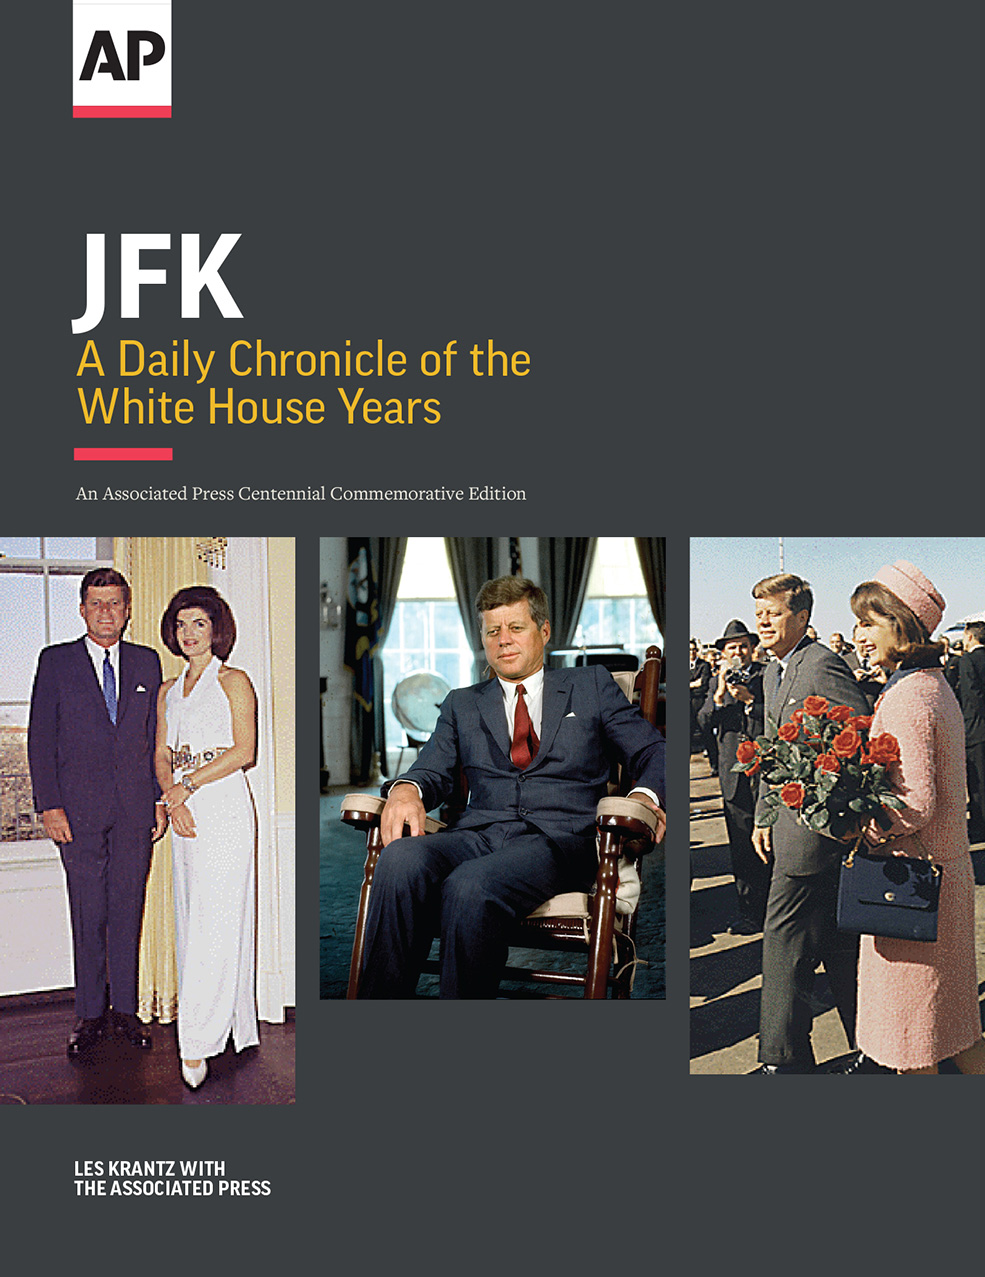 """""""JFK: A Daily Chronicle of the White House Years"""" is available in print and e-book exclusively at Amazon.com  https://www.ap.org/books/jfk/index.html"""